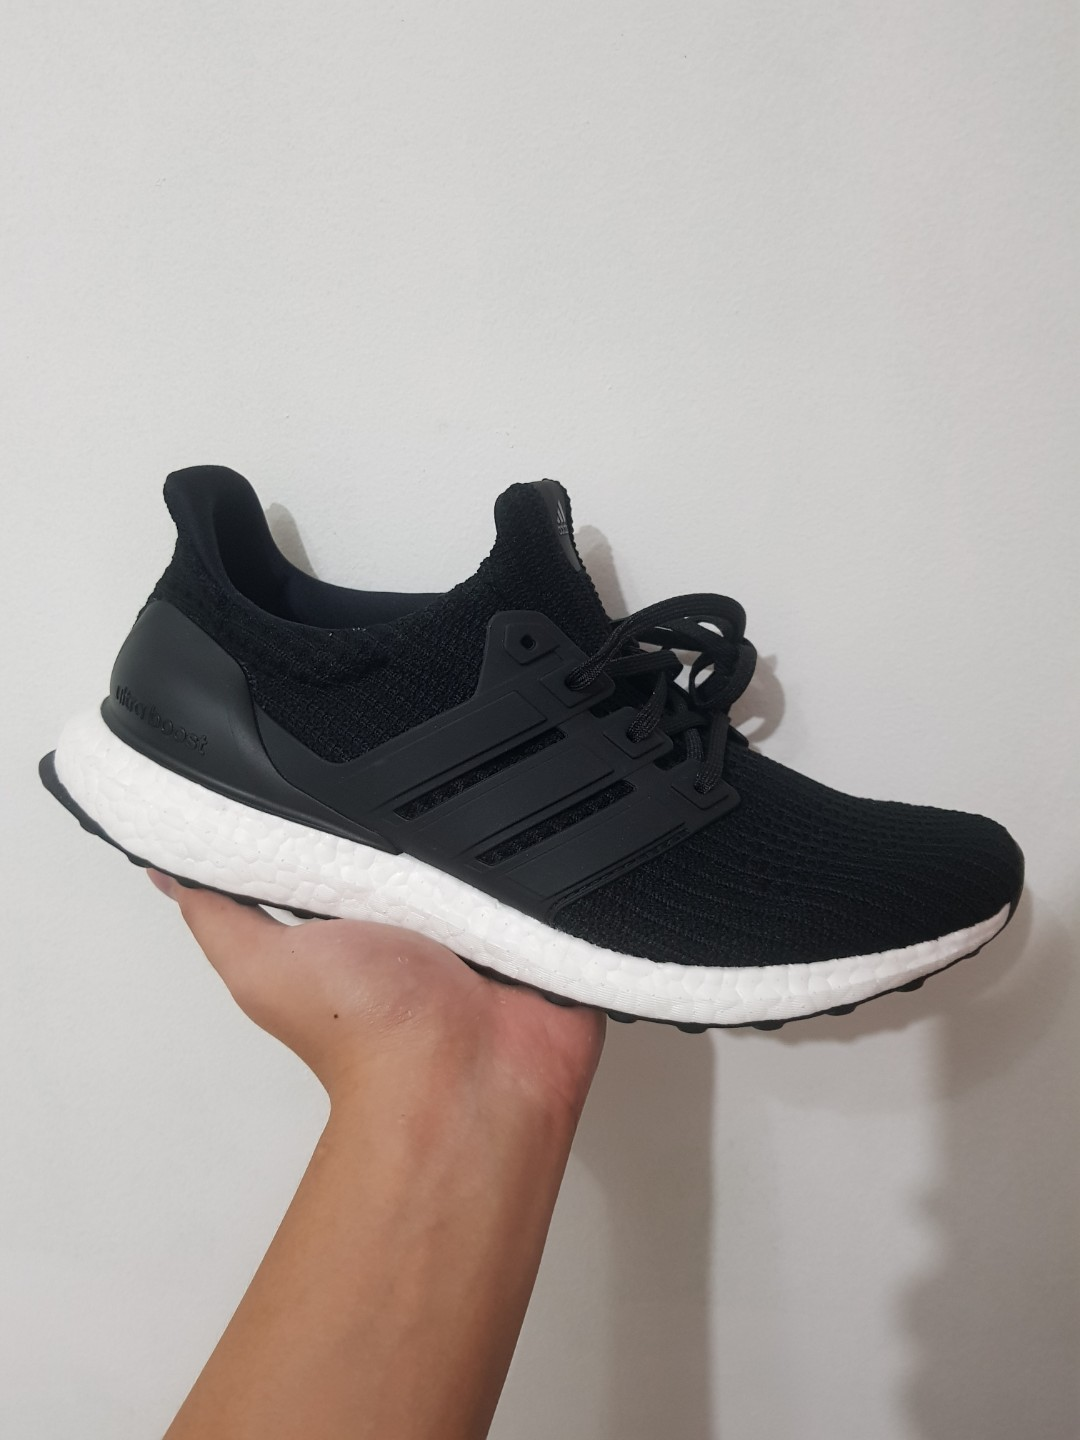 6f16f8b967189 Ultra Boost 4.0 Core Black BB6166 US 9.5